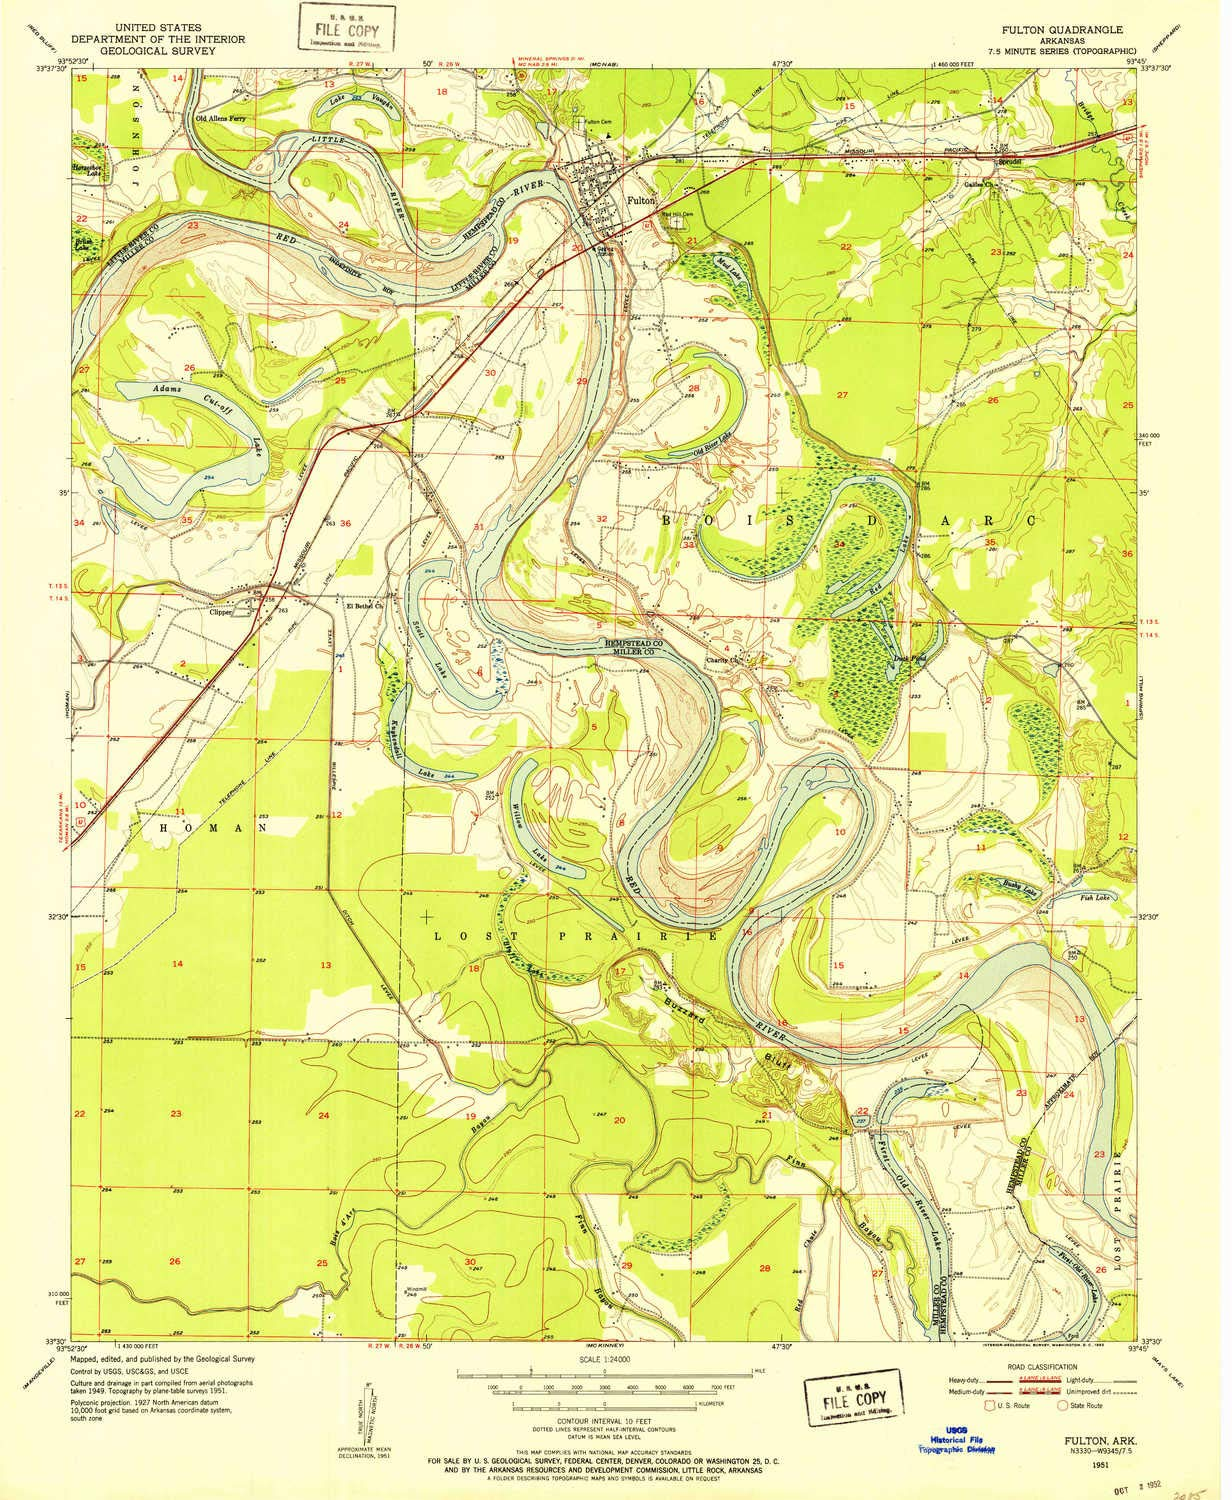 Ark Elevation Map.Amazon Com Yellowmaps Fulton Ar Topo Map 1 24000 Scale 7 5 X 7 5